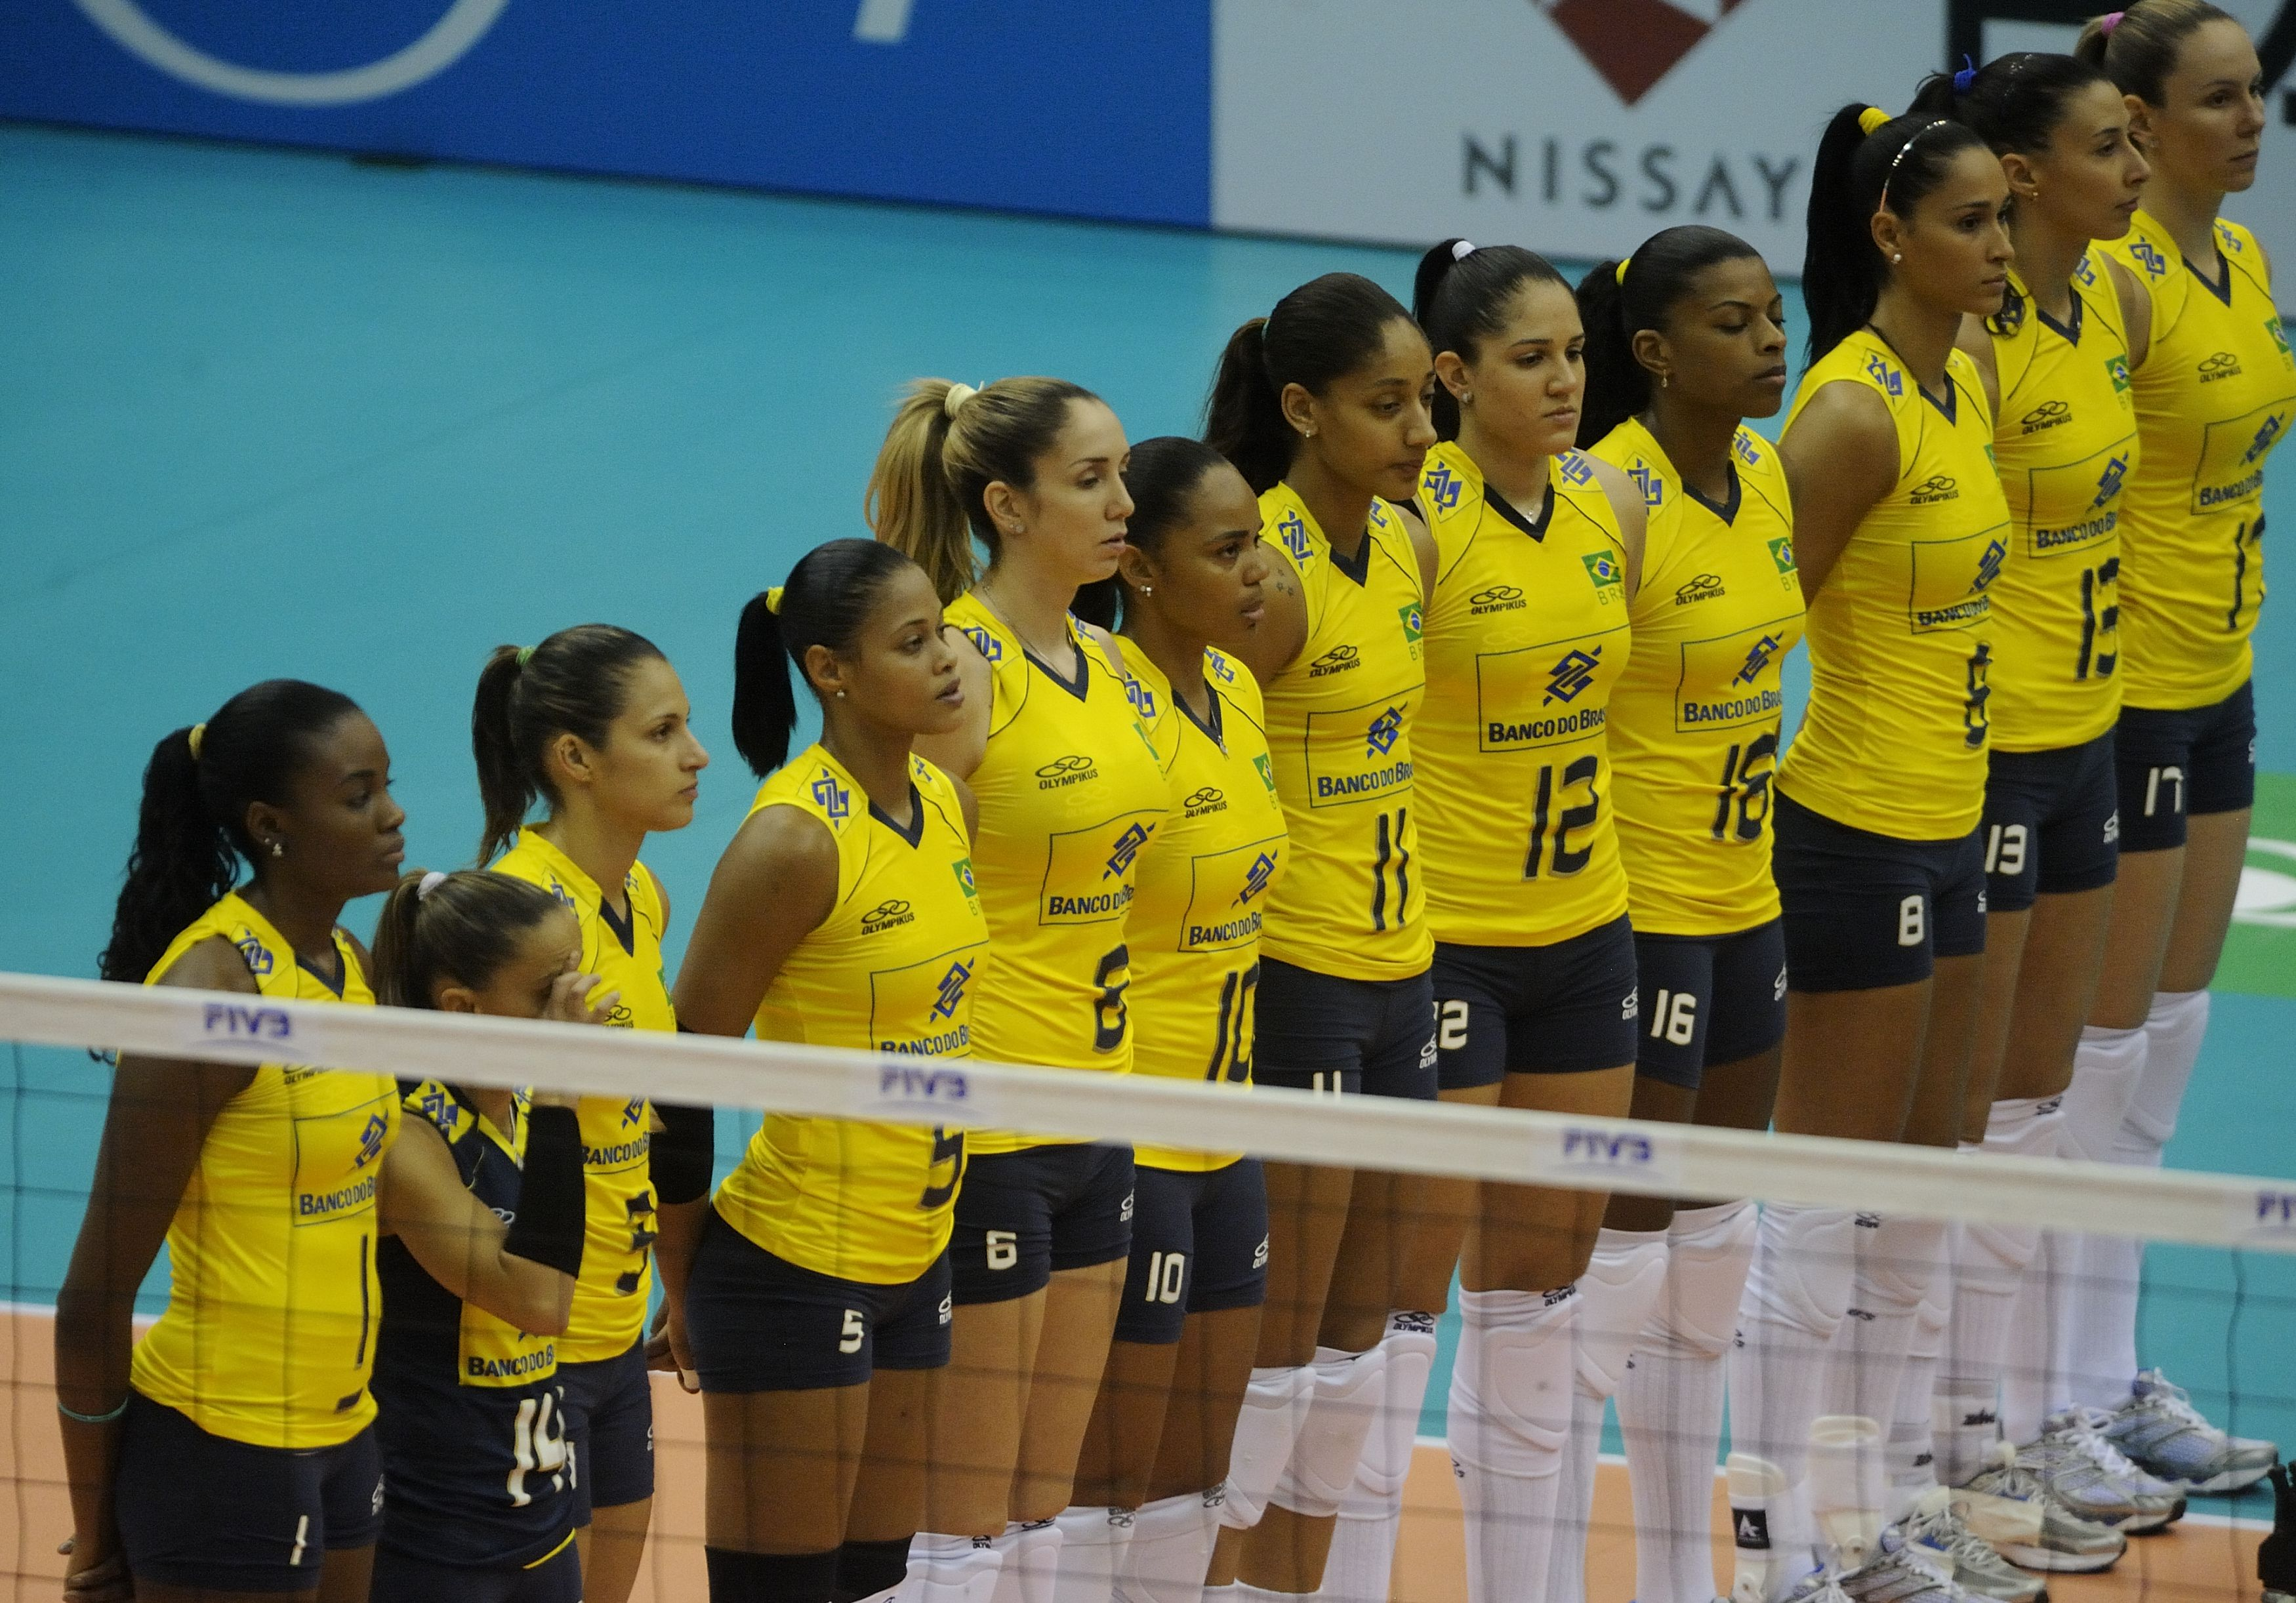 Agree nude brazilian women volleyball team curious